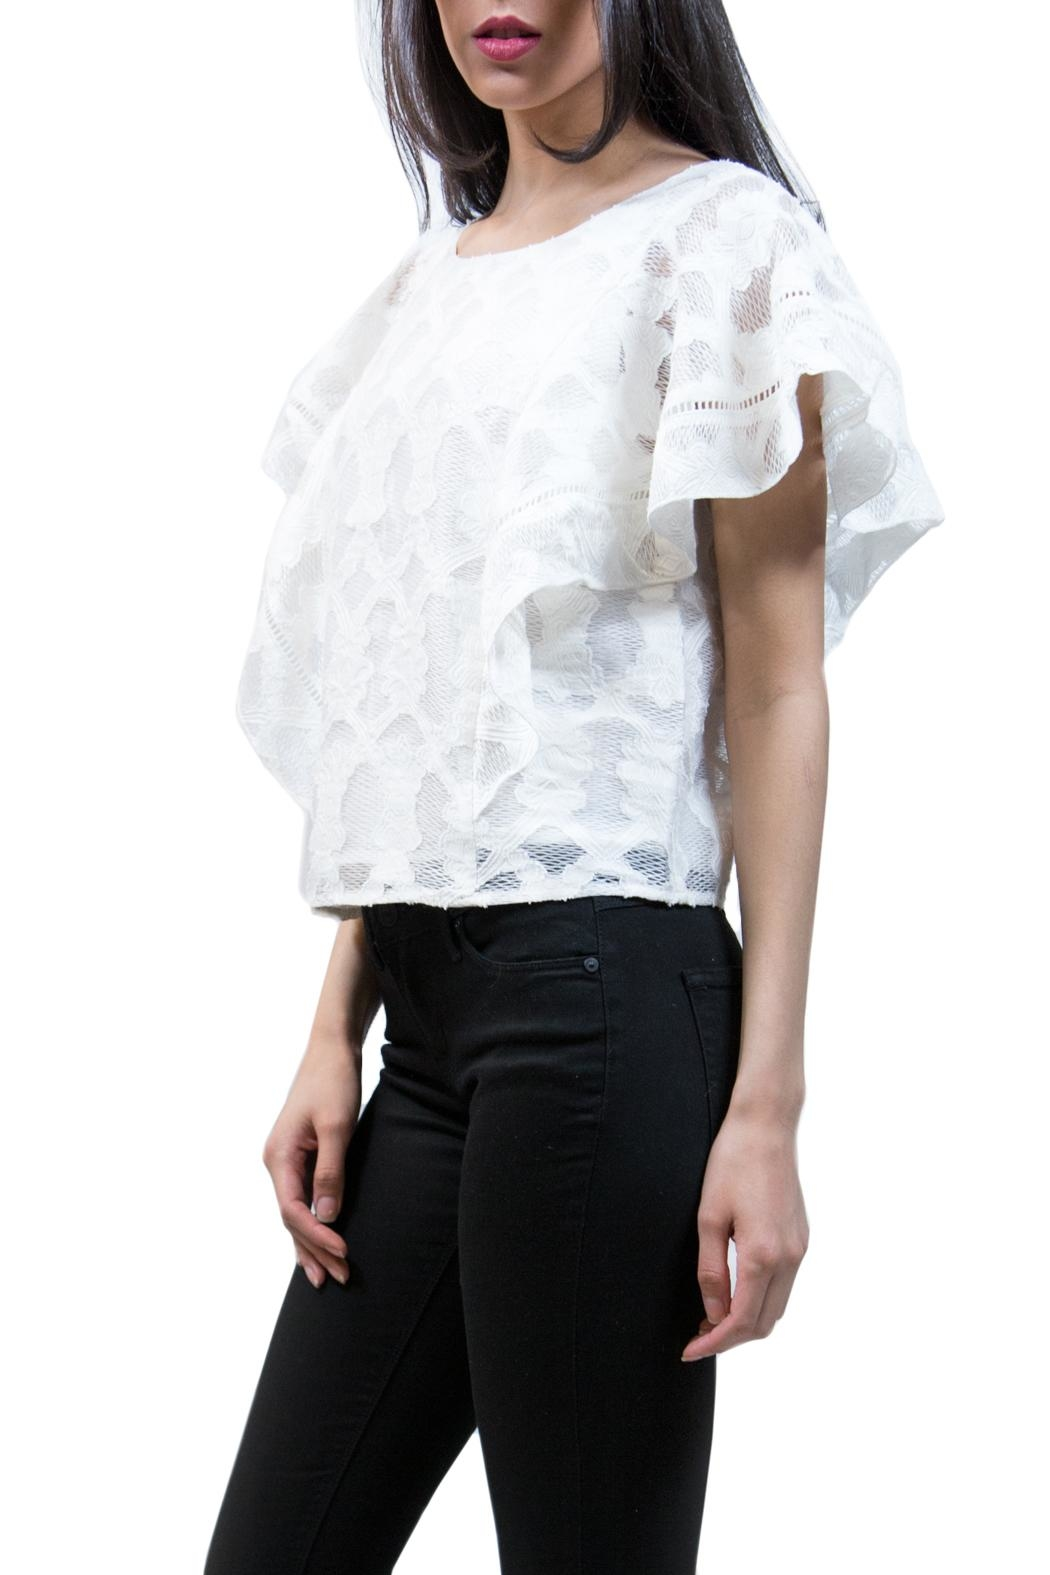 Ark & Co. Embroidered Lace Top - Front Full Image